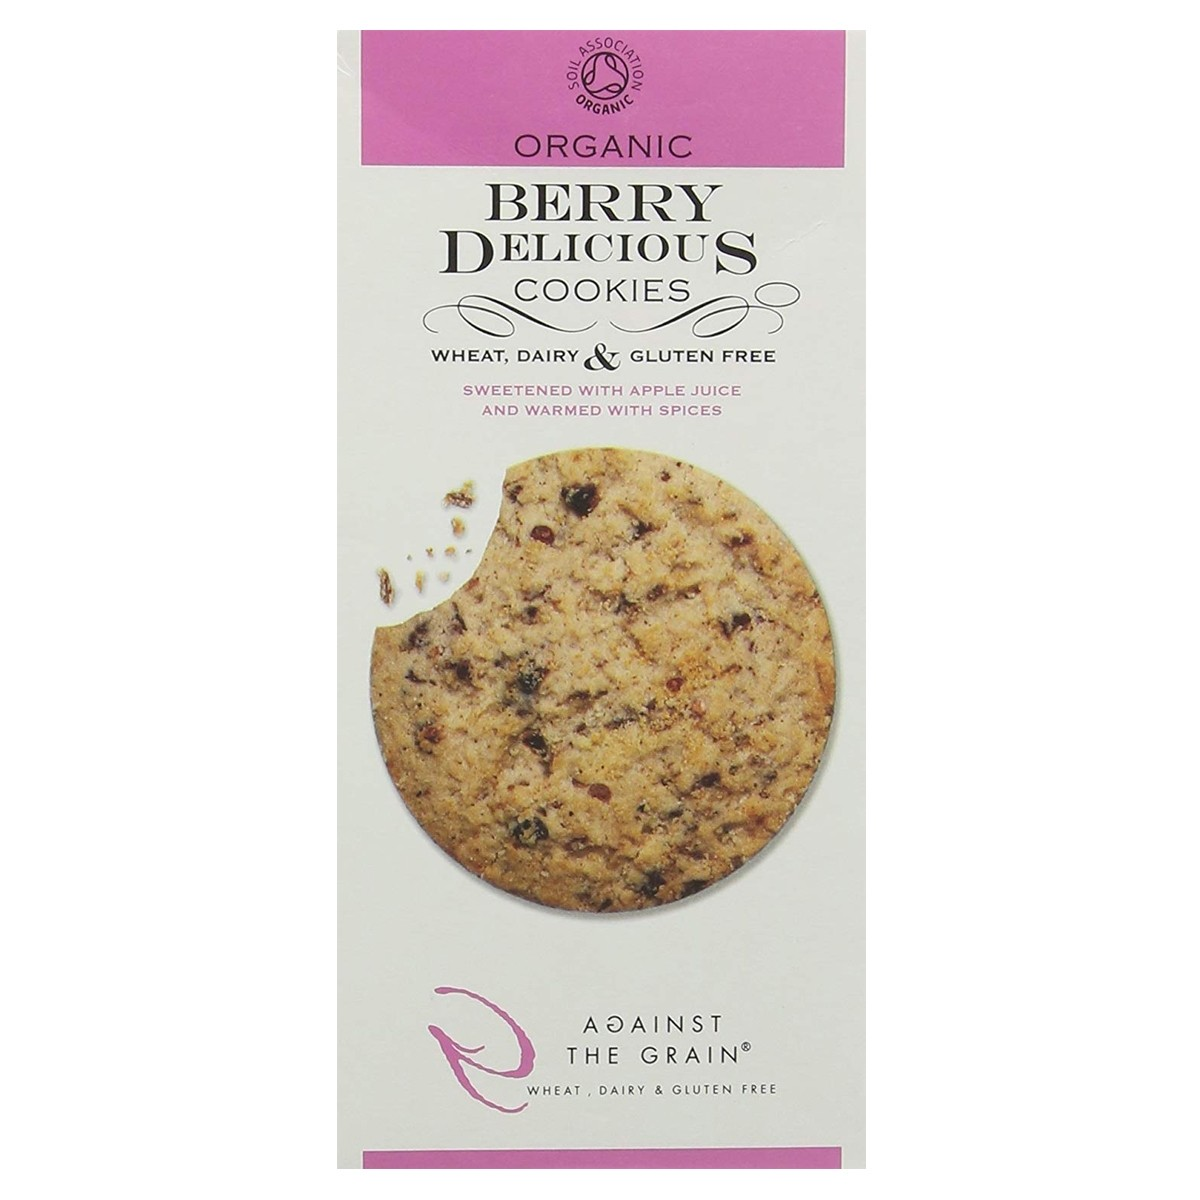 Berry Delicious Cookies